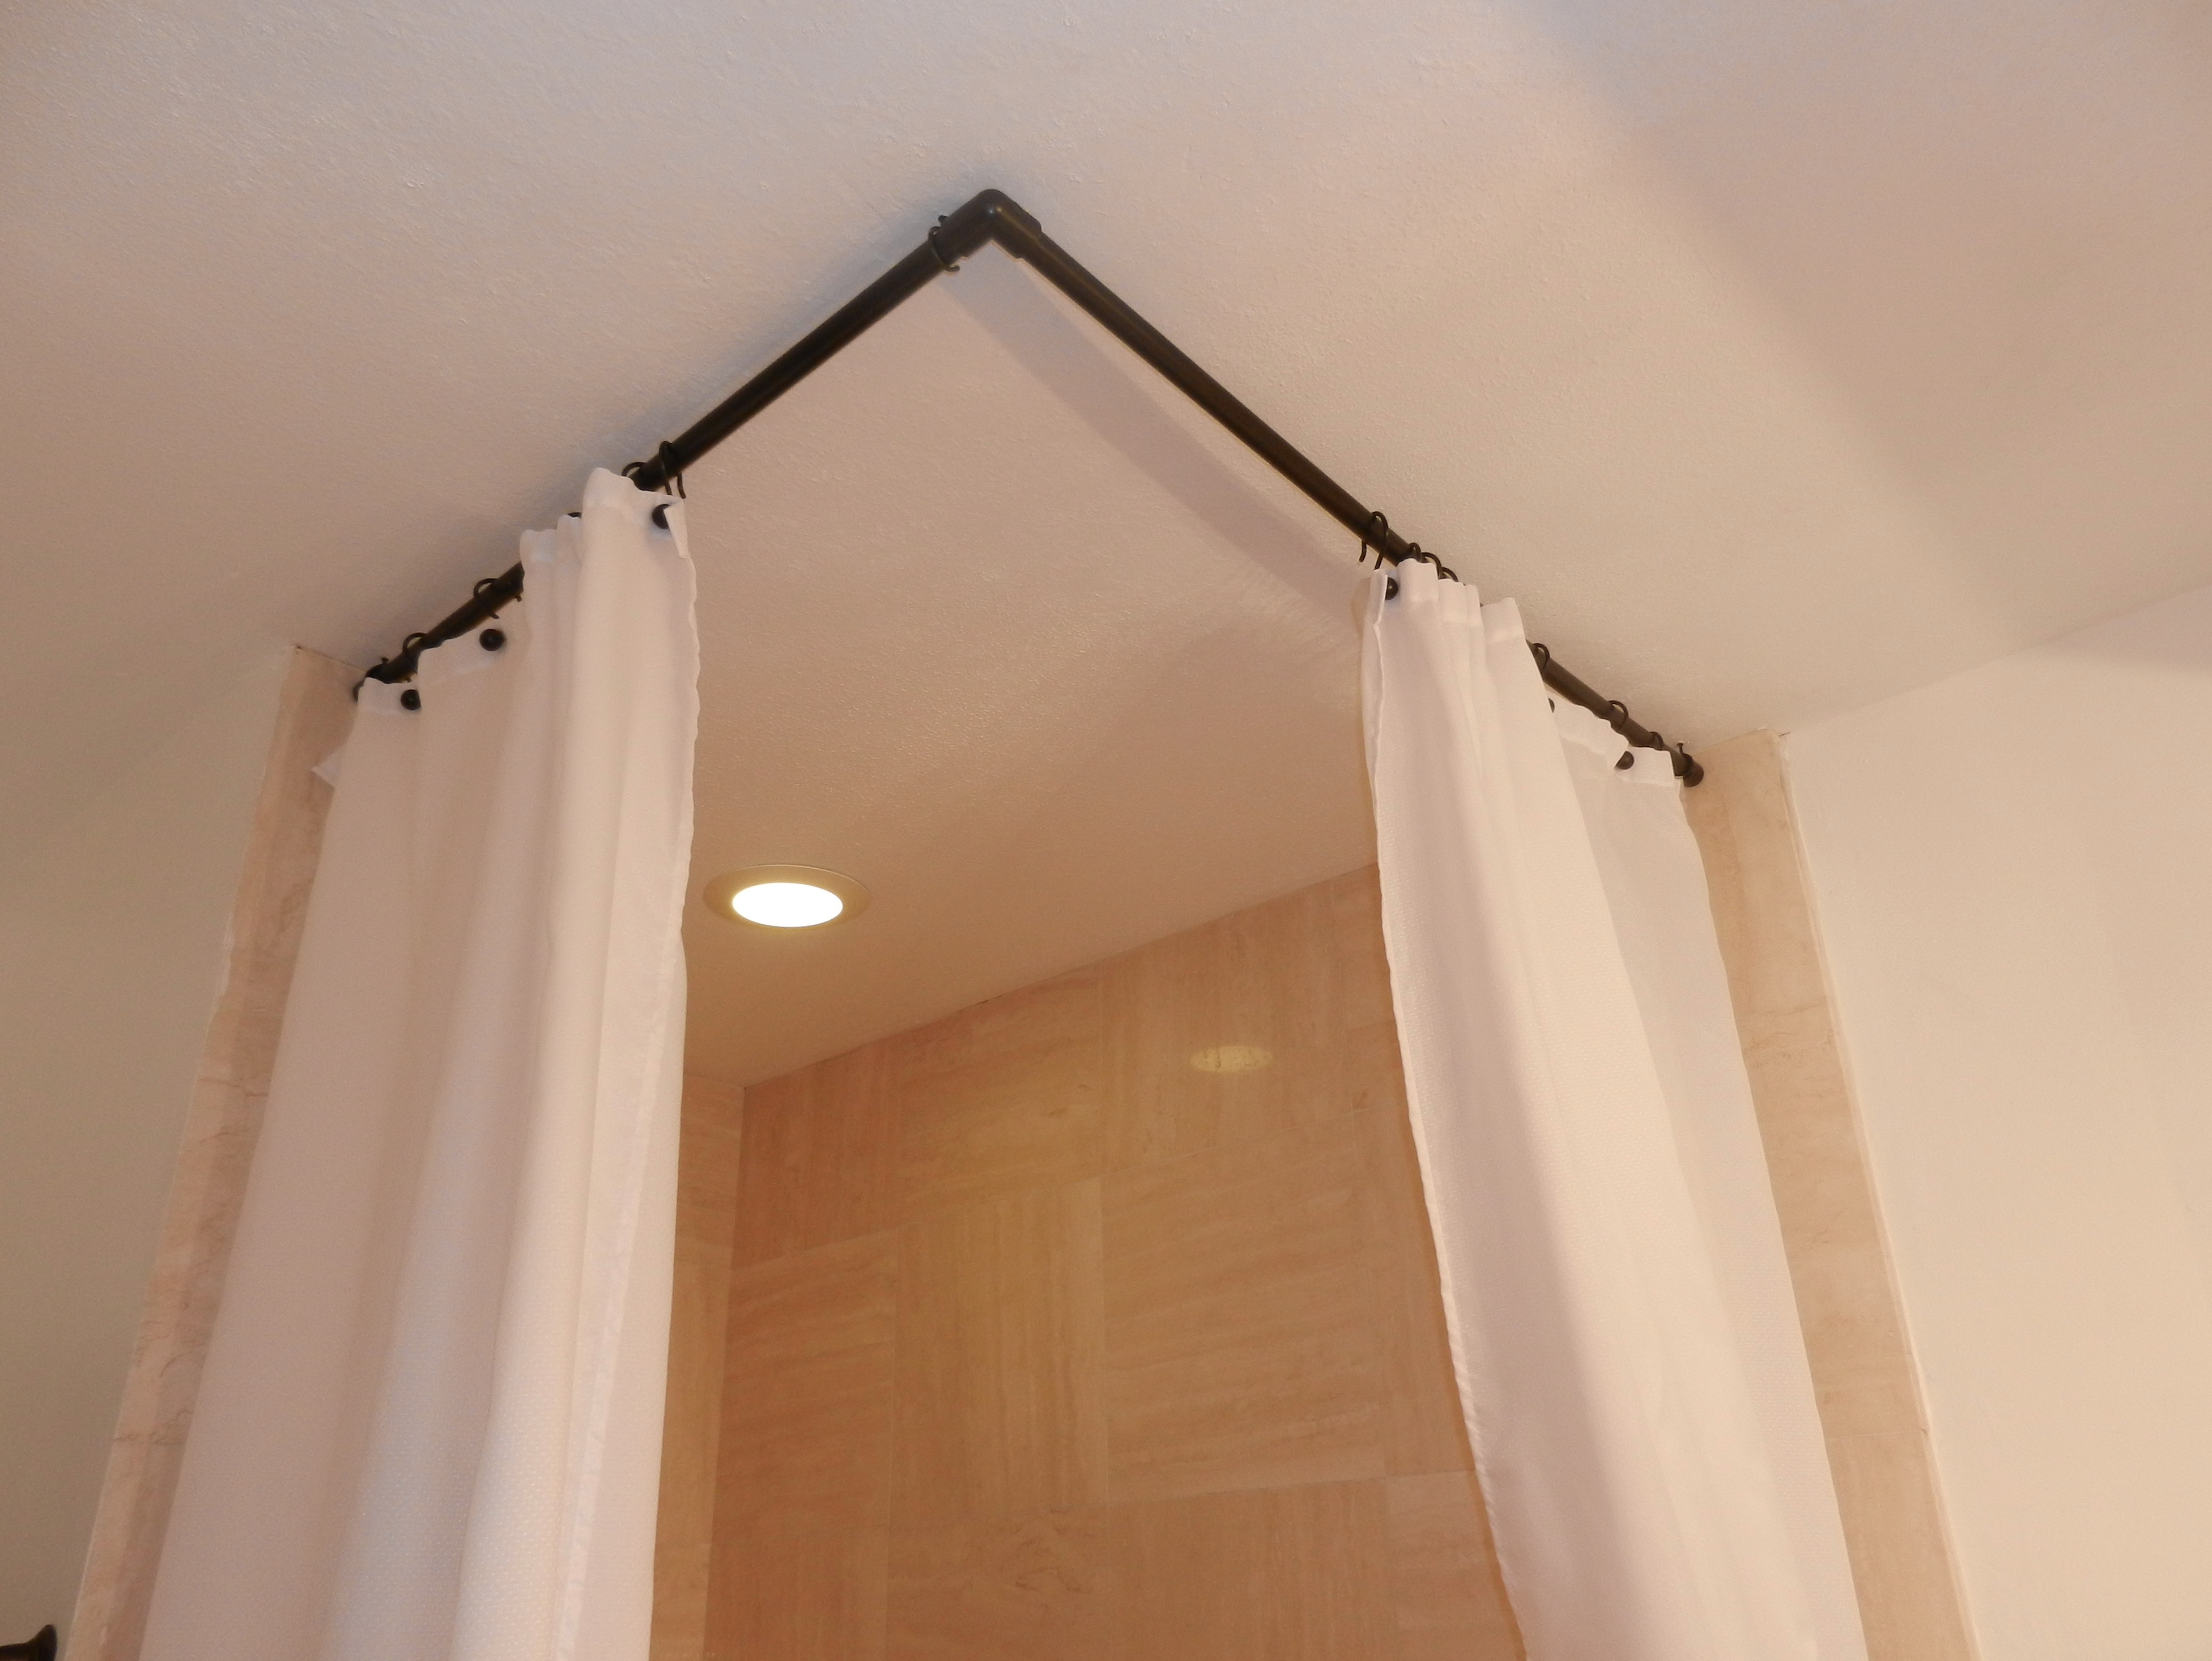 L Shaped Shower Curtain Rod Without Ceiling Support Designs